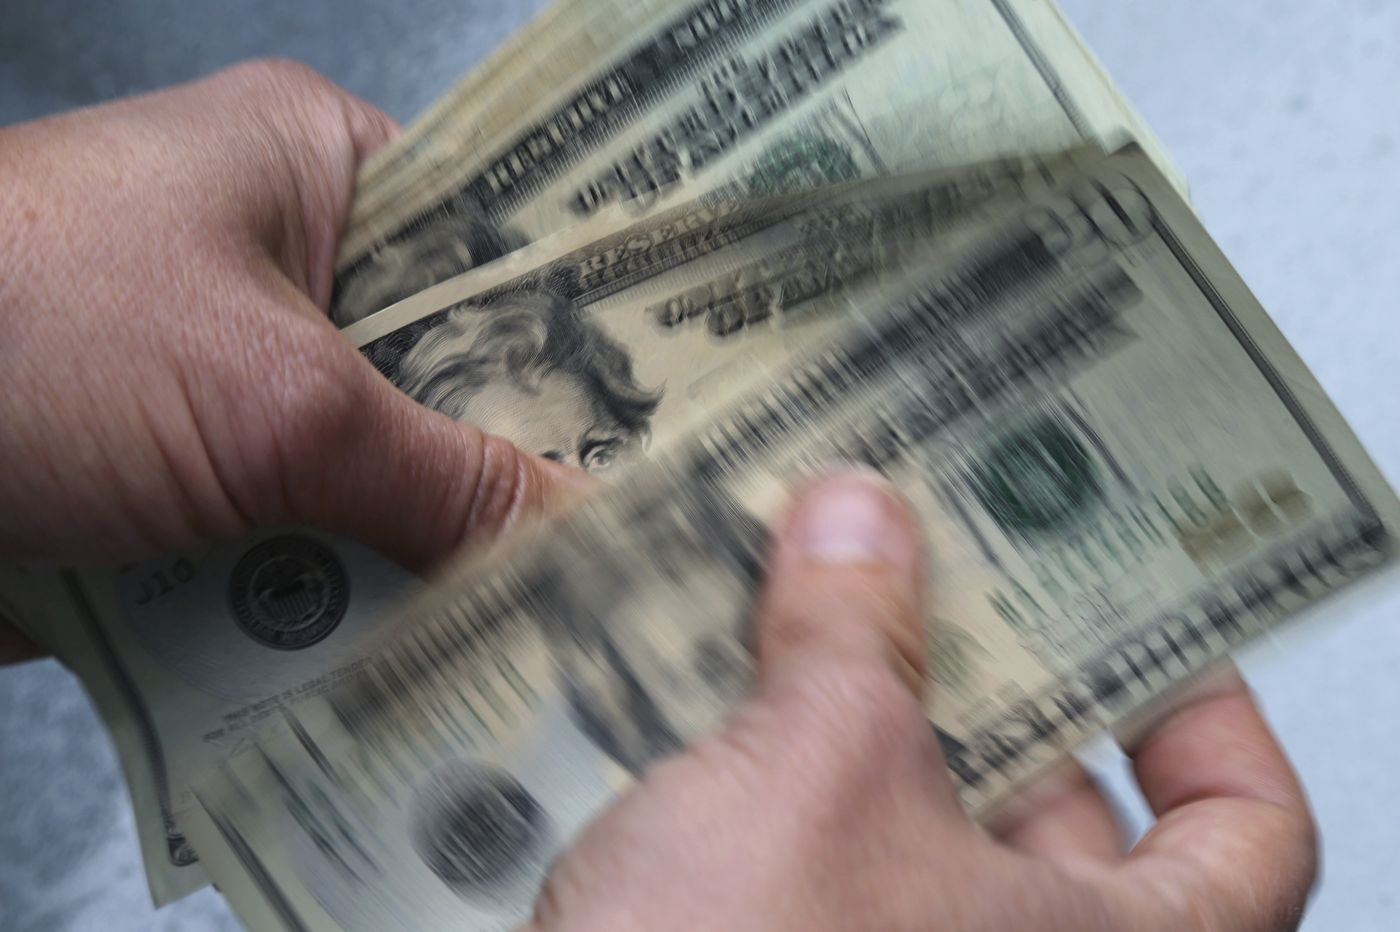 If you are waiting on a big tax refund, then you aren't doing it right | Opinion